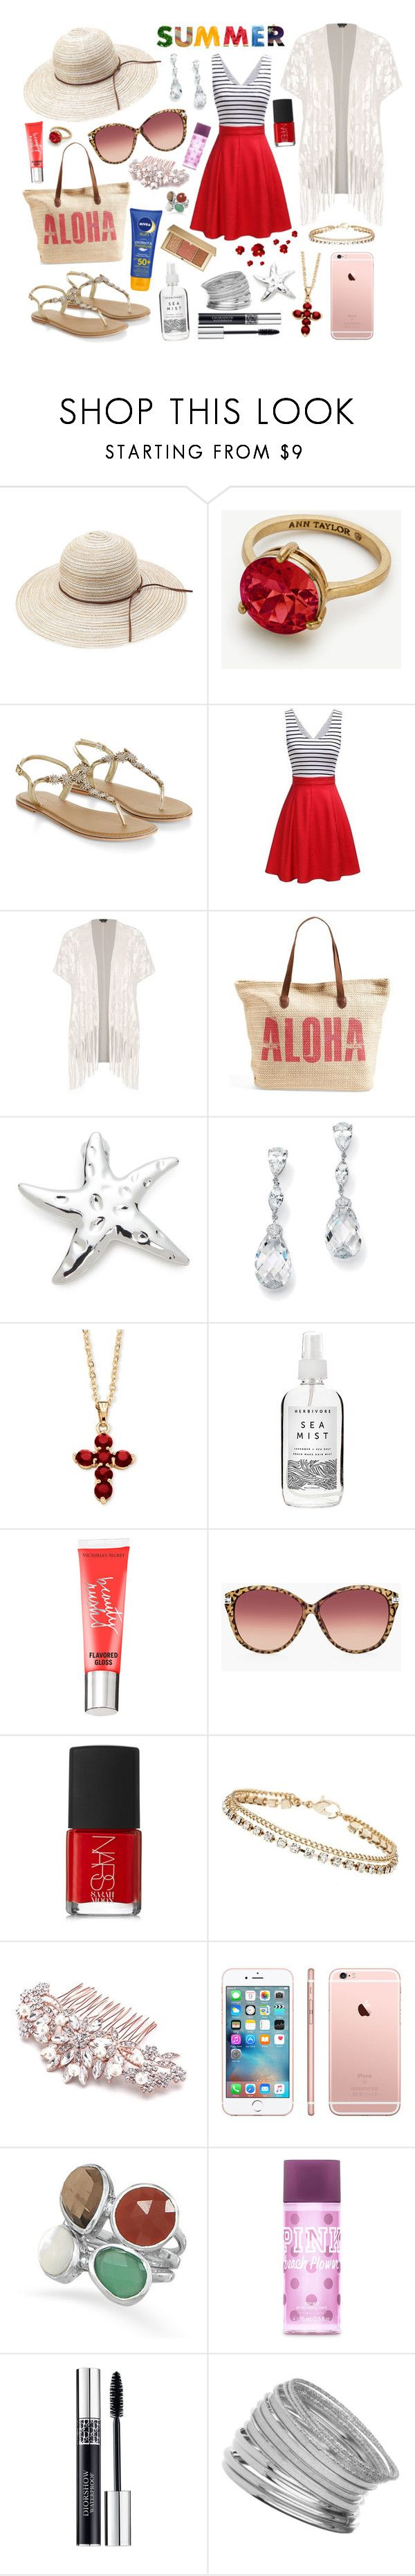 """""""Beach Vibes"""" by xorozetaxo ❤ liked on Polyvore featuring Ann Taylor, Accessorize, City Chic, Rip Curl, Kim Rogers, Palm Beach Jewelry, Herbivore, Victoria's Secret, Nivea and Chico's"""